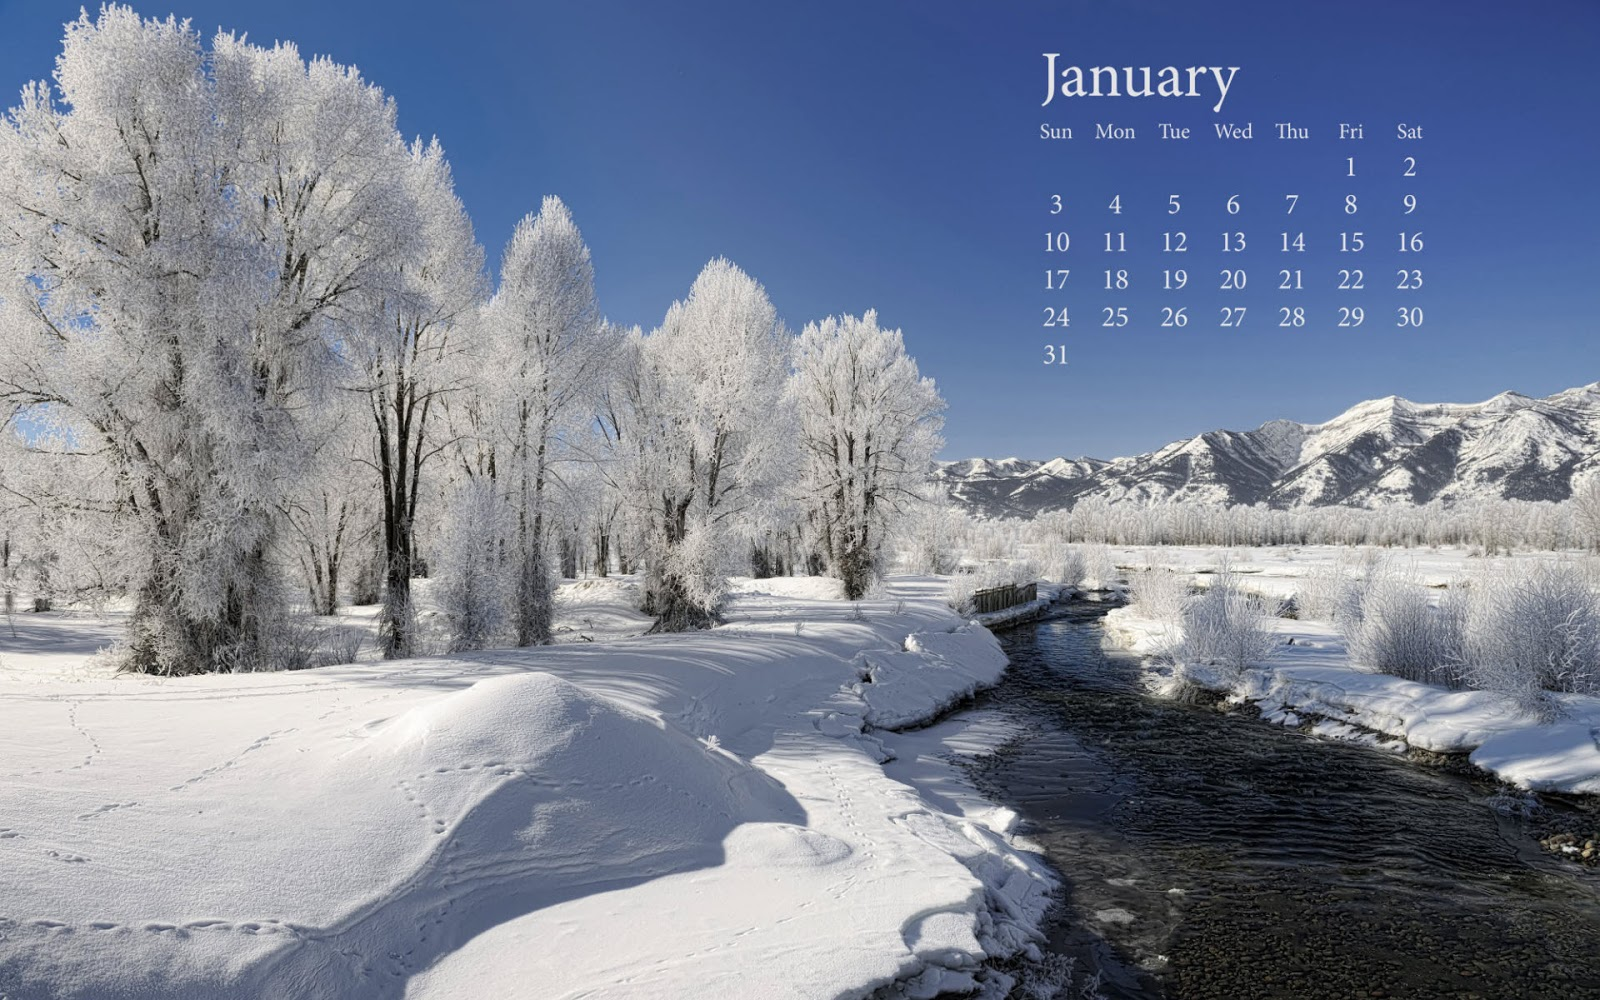 Download Desktop Wallpapers January Wallpapers for 1600x1000